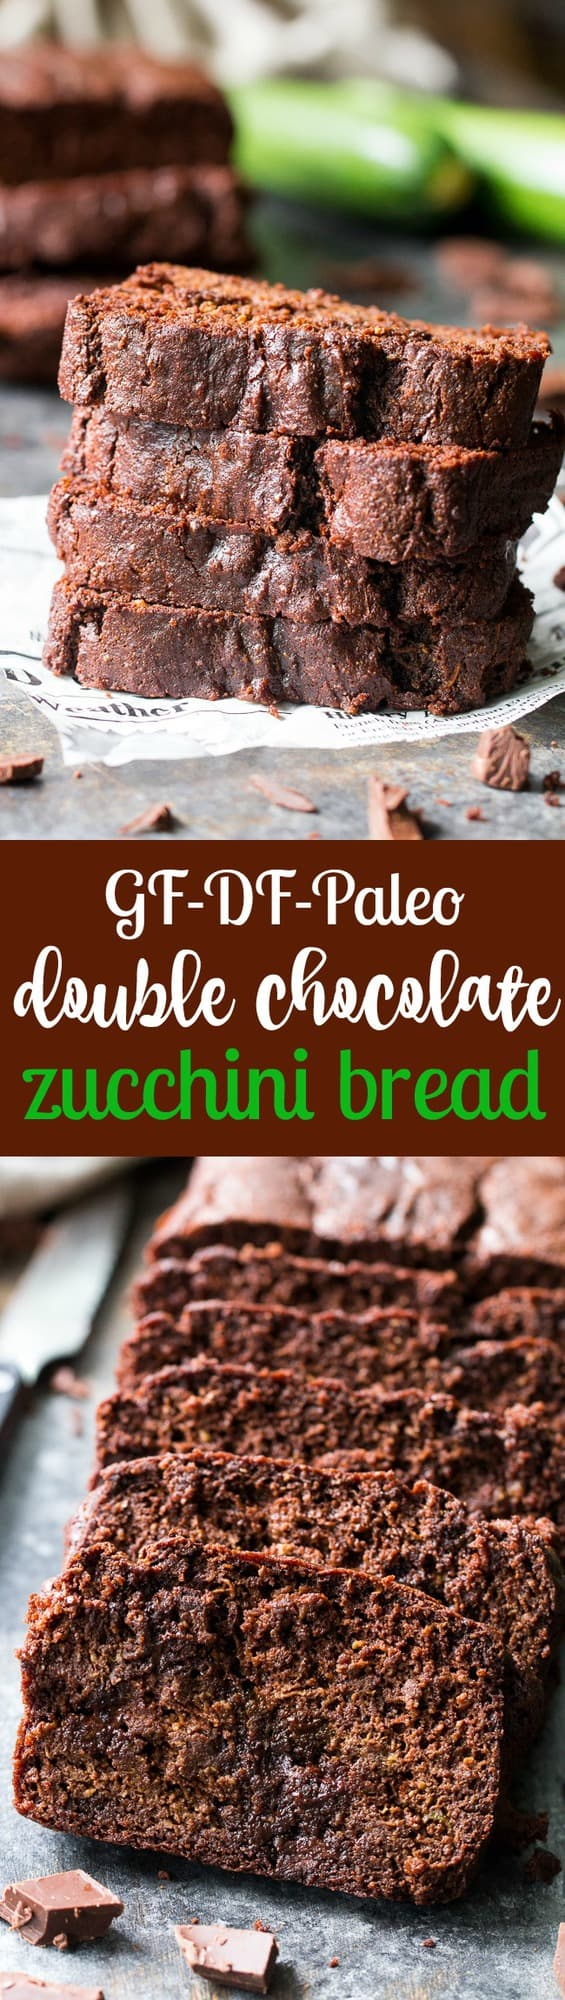 This super moist and rich double chocolate zucchini bread tastes like dessert but is secretly healthy, Paleo, free of refined sugar, grain free, gluten free and dairy free. It's kid approved and great for snacks and even breakfast!